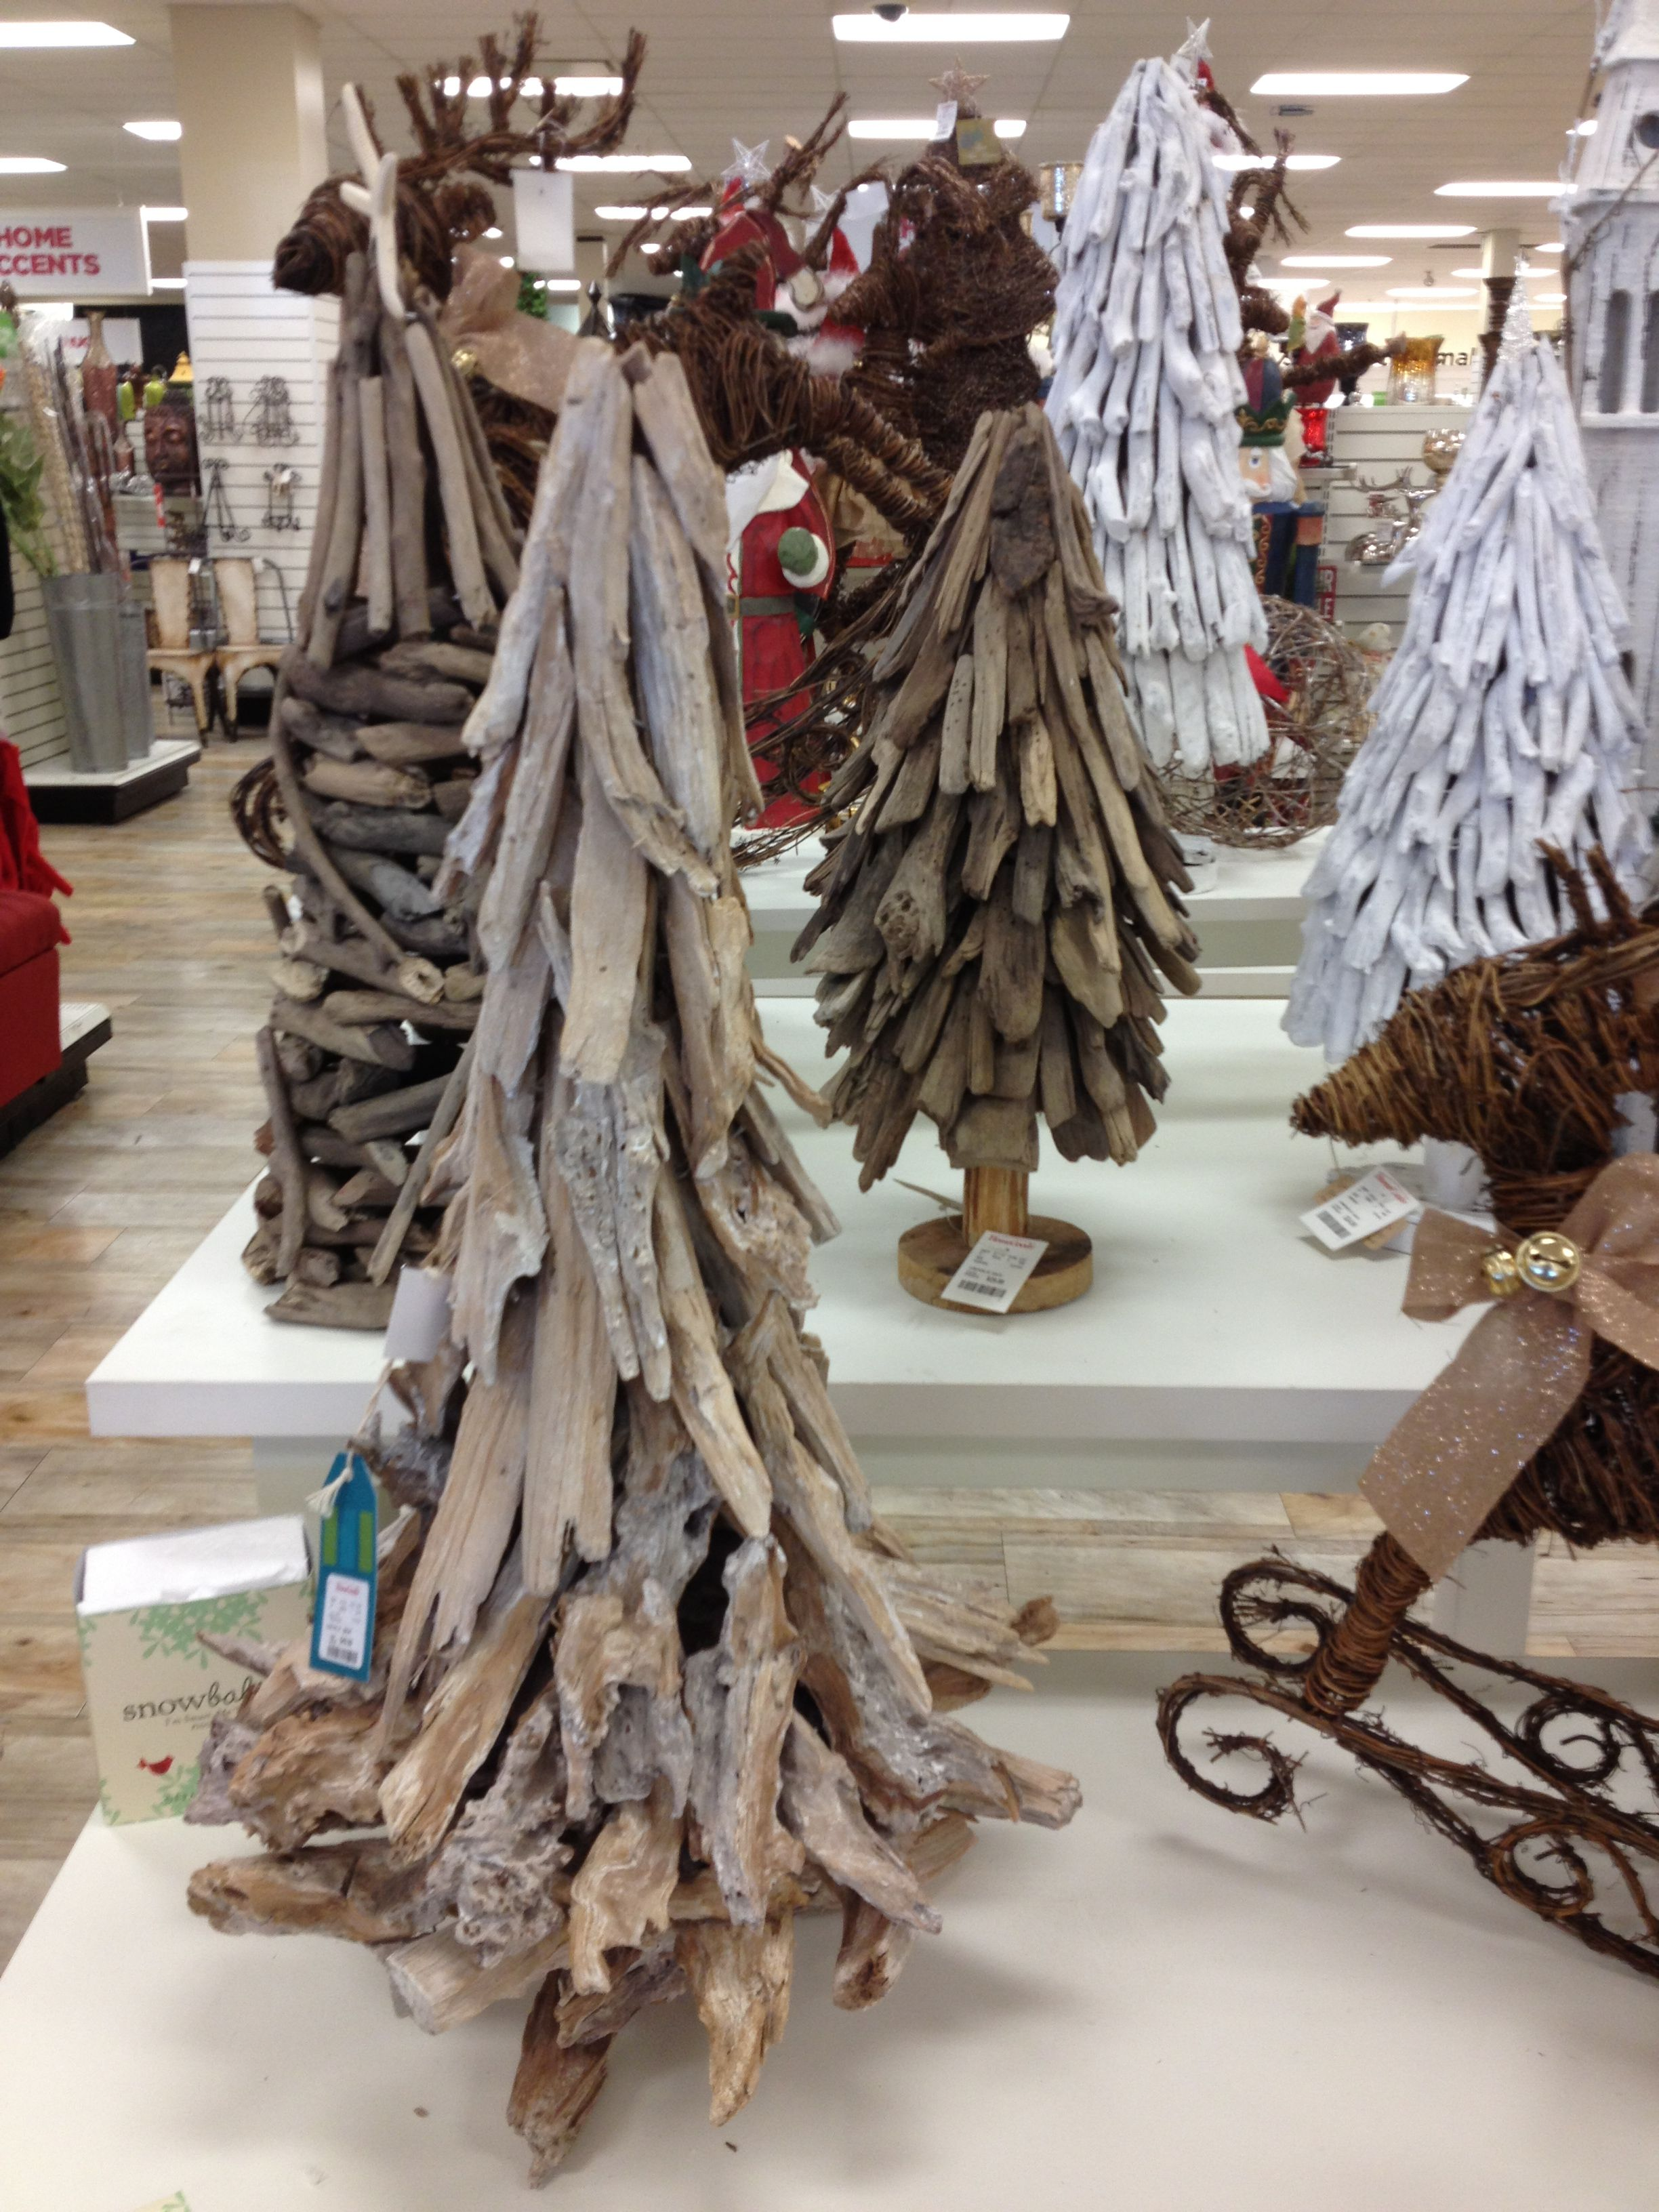 Drift wood trees from home goods